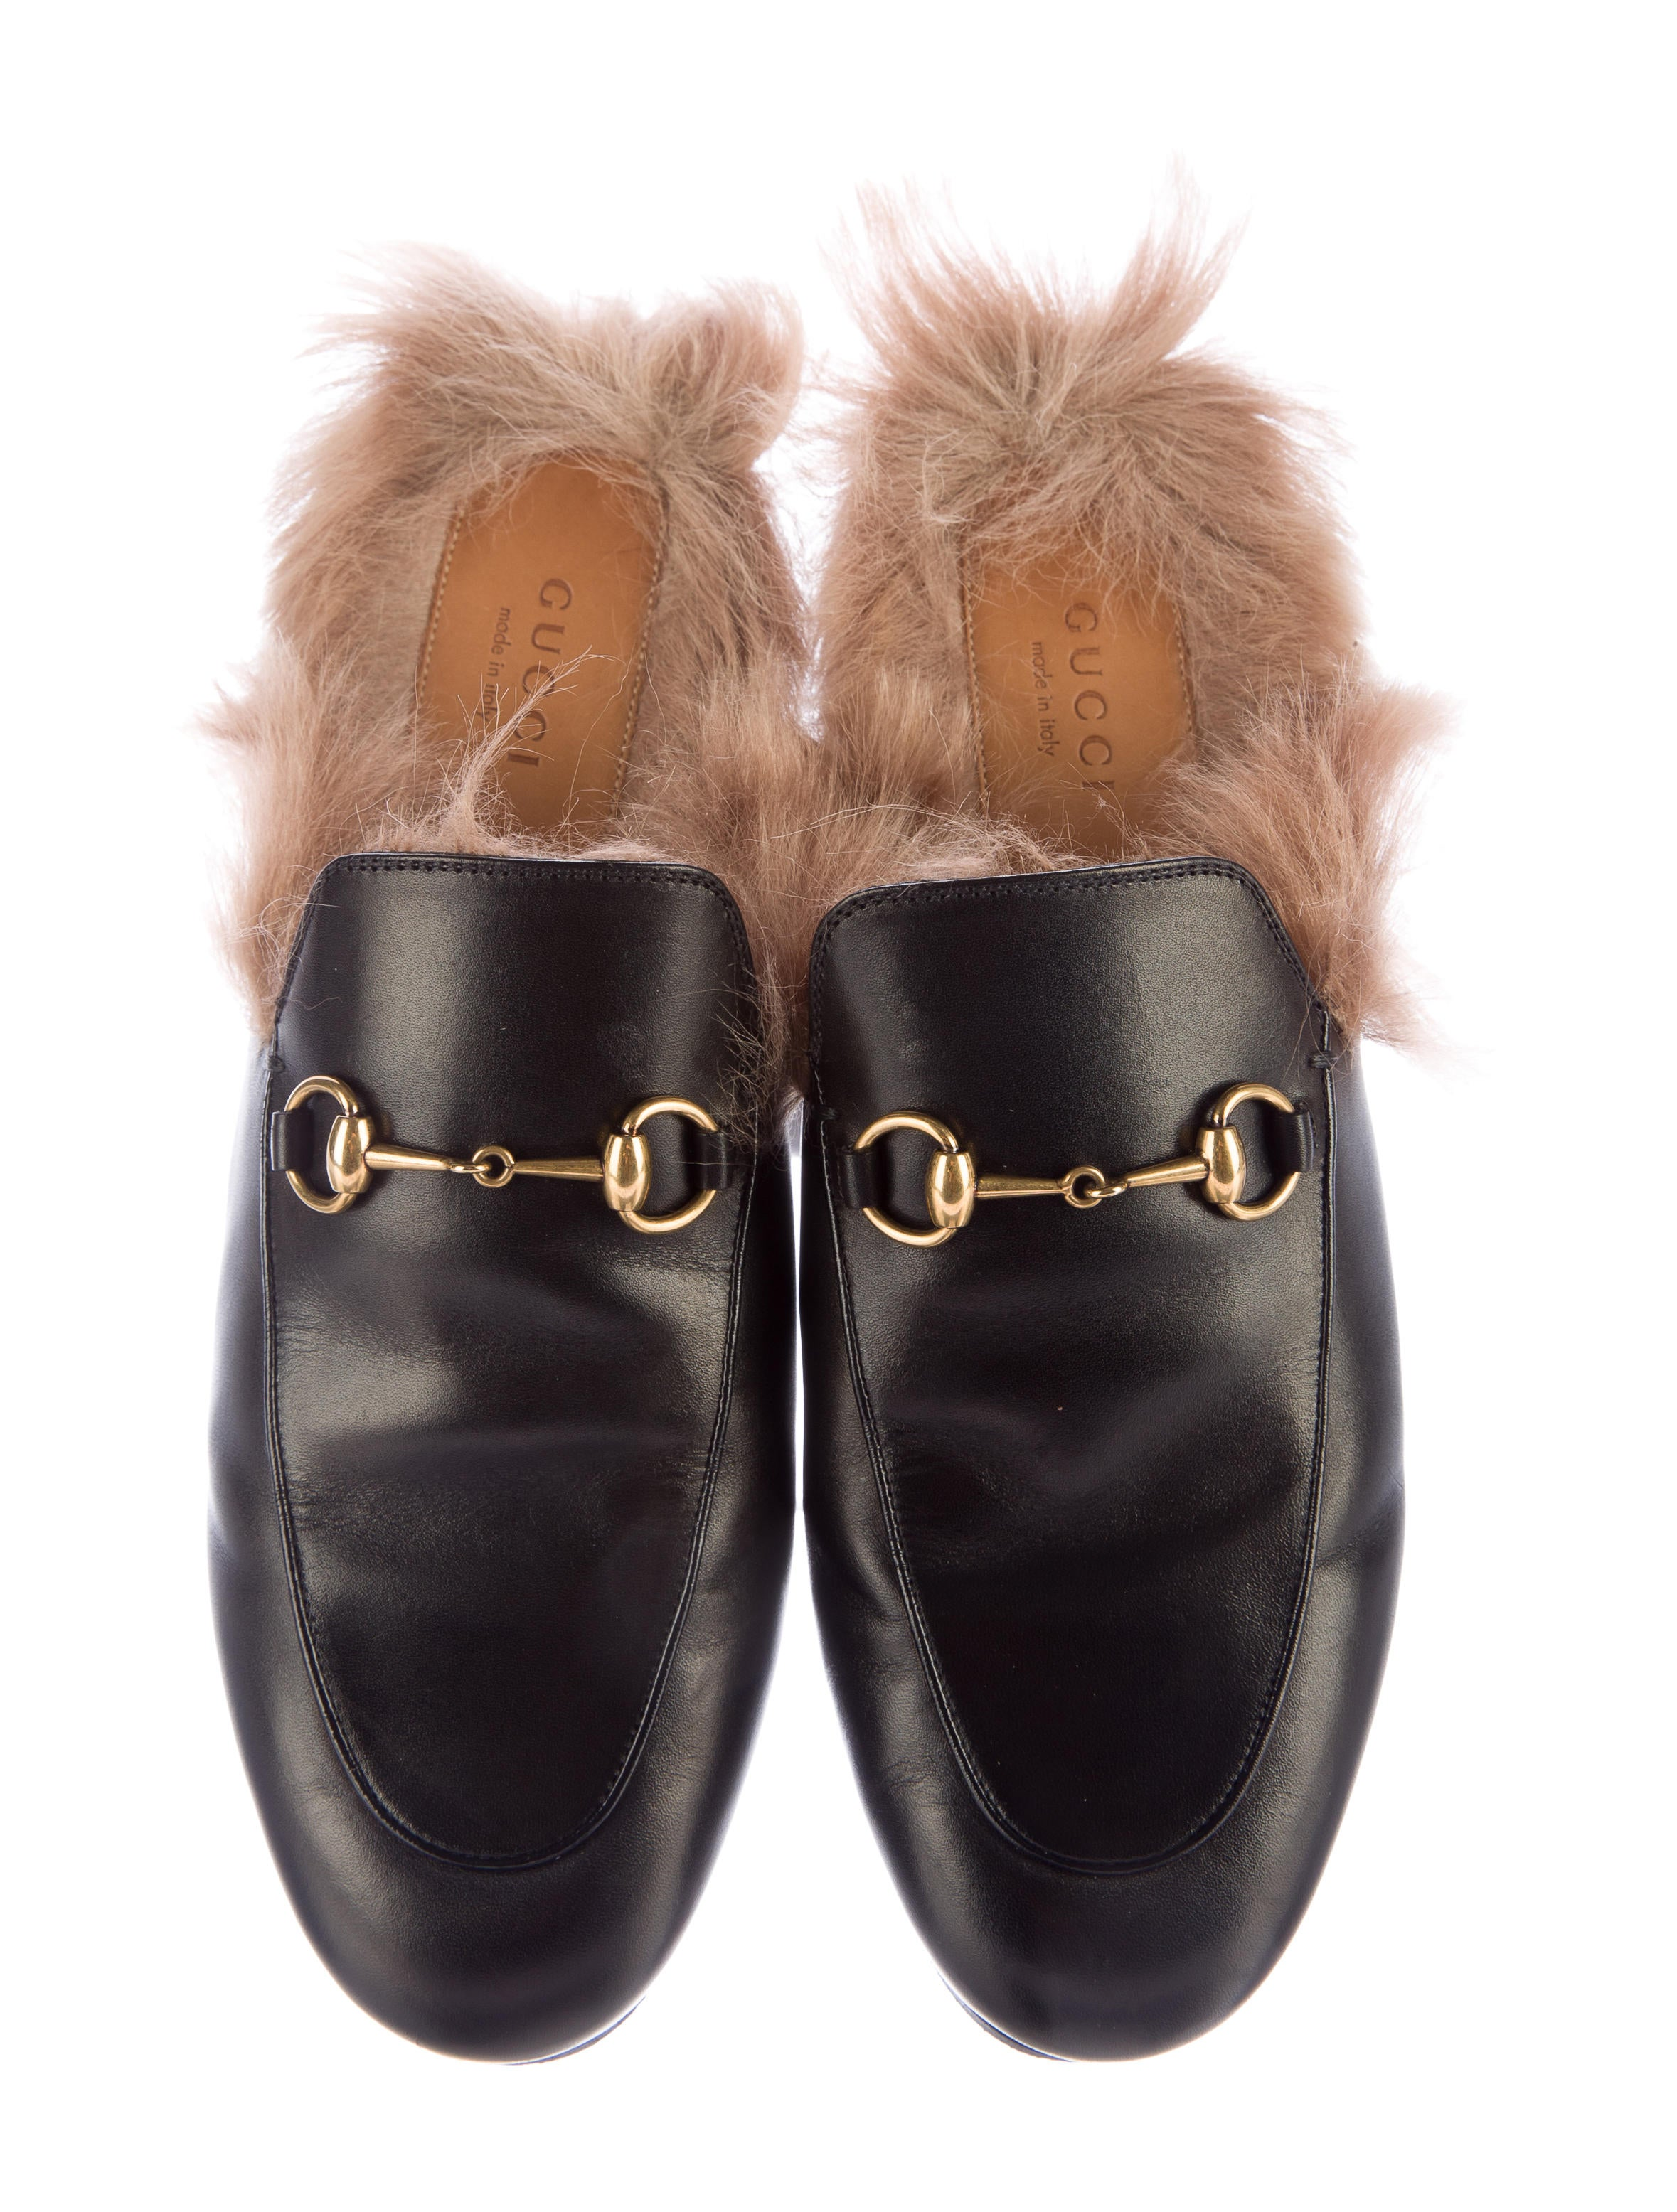 Gucci Kangaroo Fur Trimmed Princetown Slippers Shoes